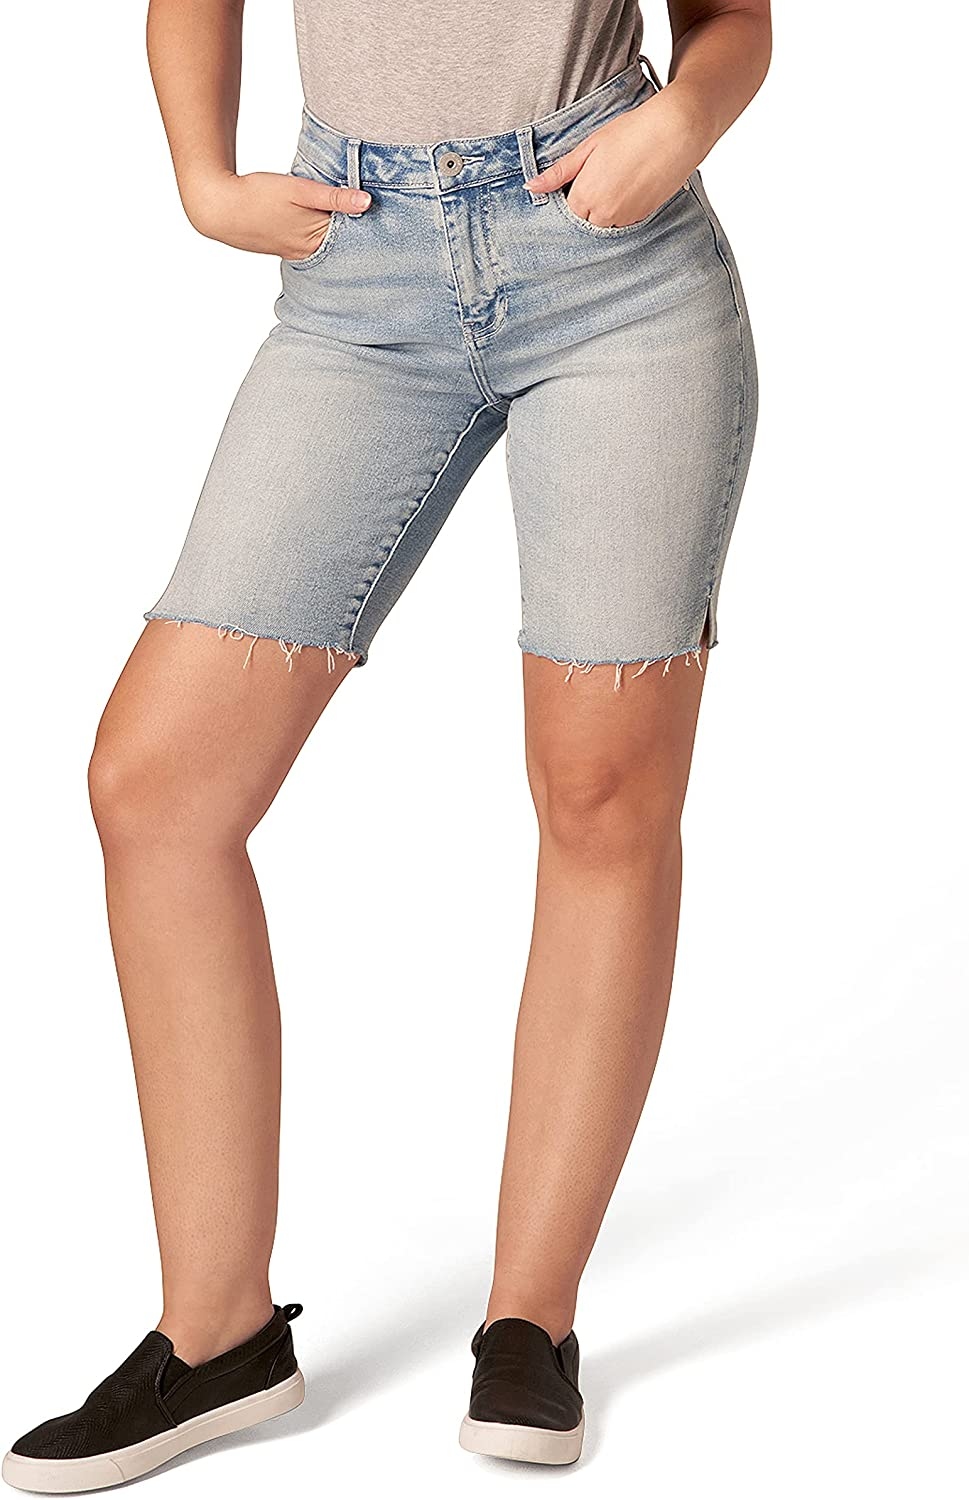 Jag Jeans Special sale item Women's The Short Japan Maker New City High Rise